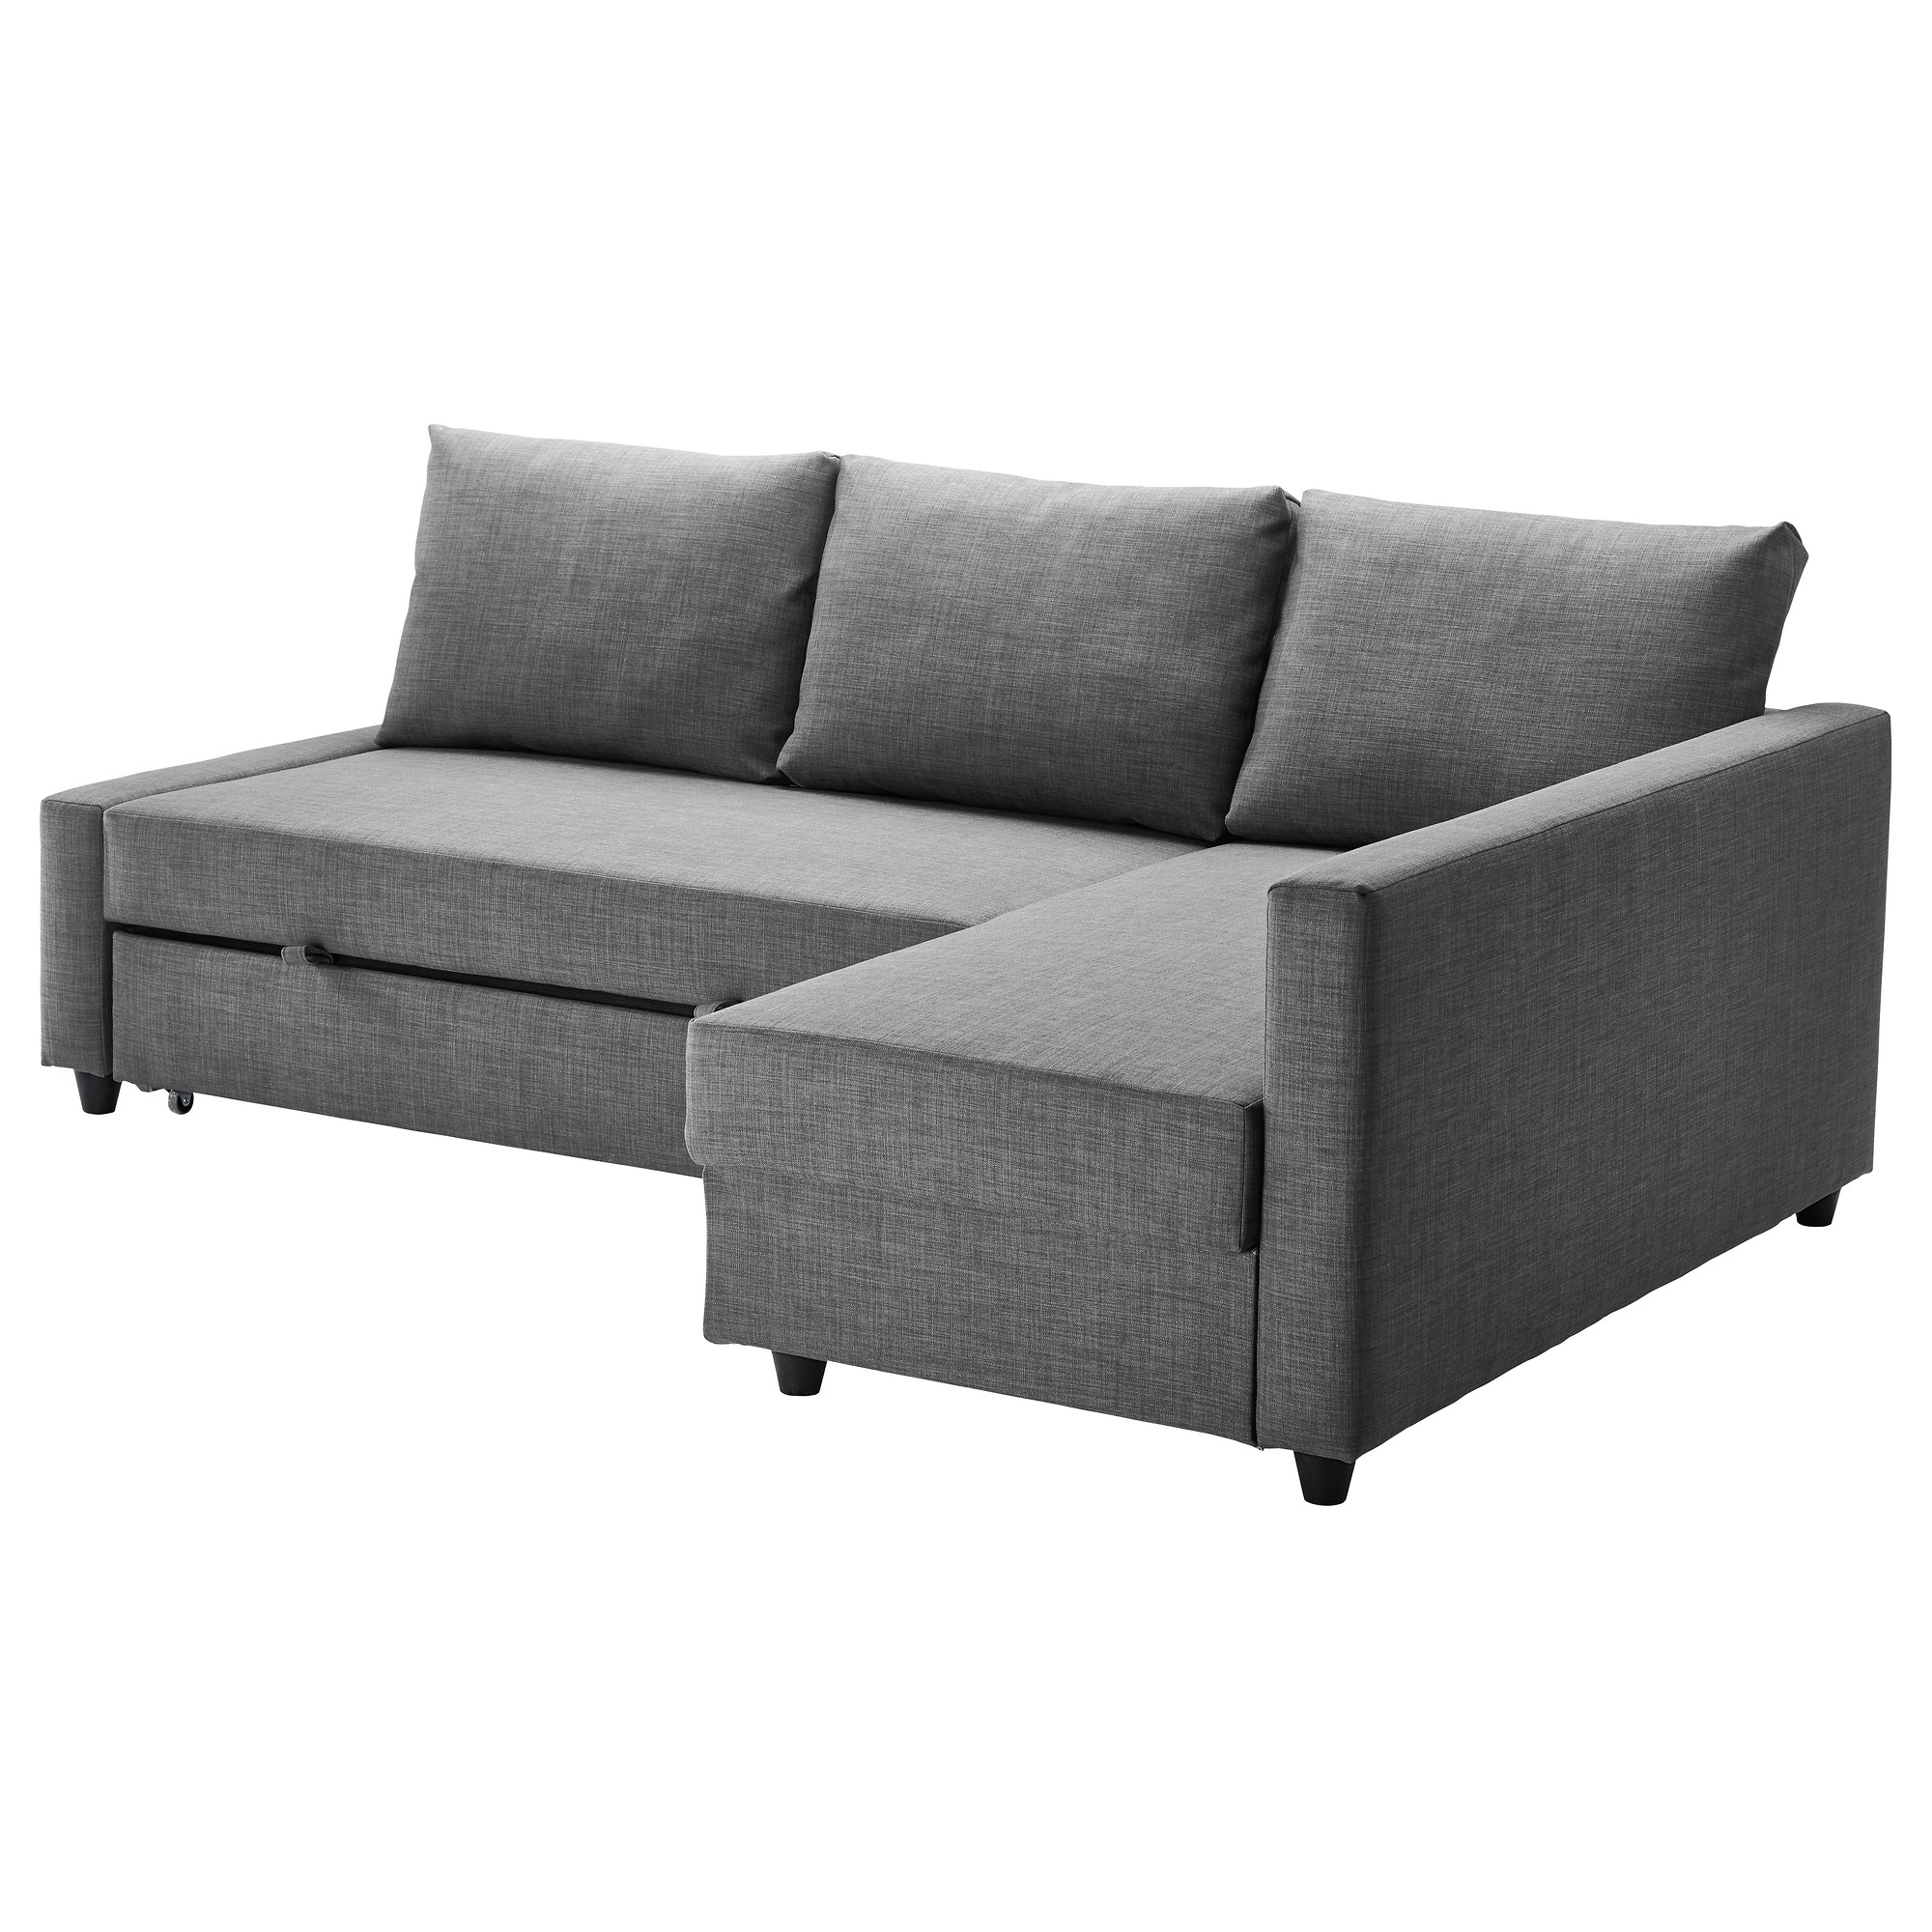 sofa sleeper friheten sleeper sectional,3 seat w/storage - skiftebo dark gray - ikea EQIZMMA